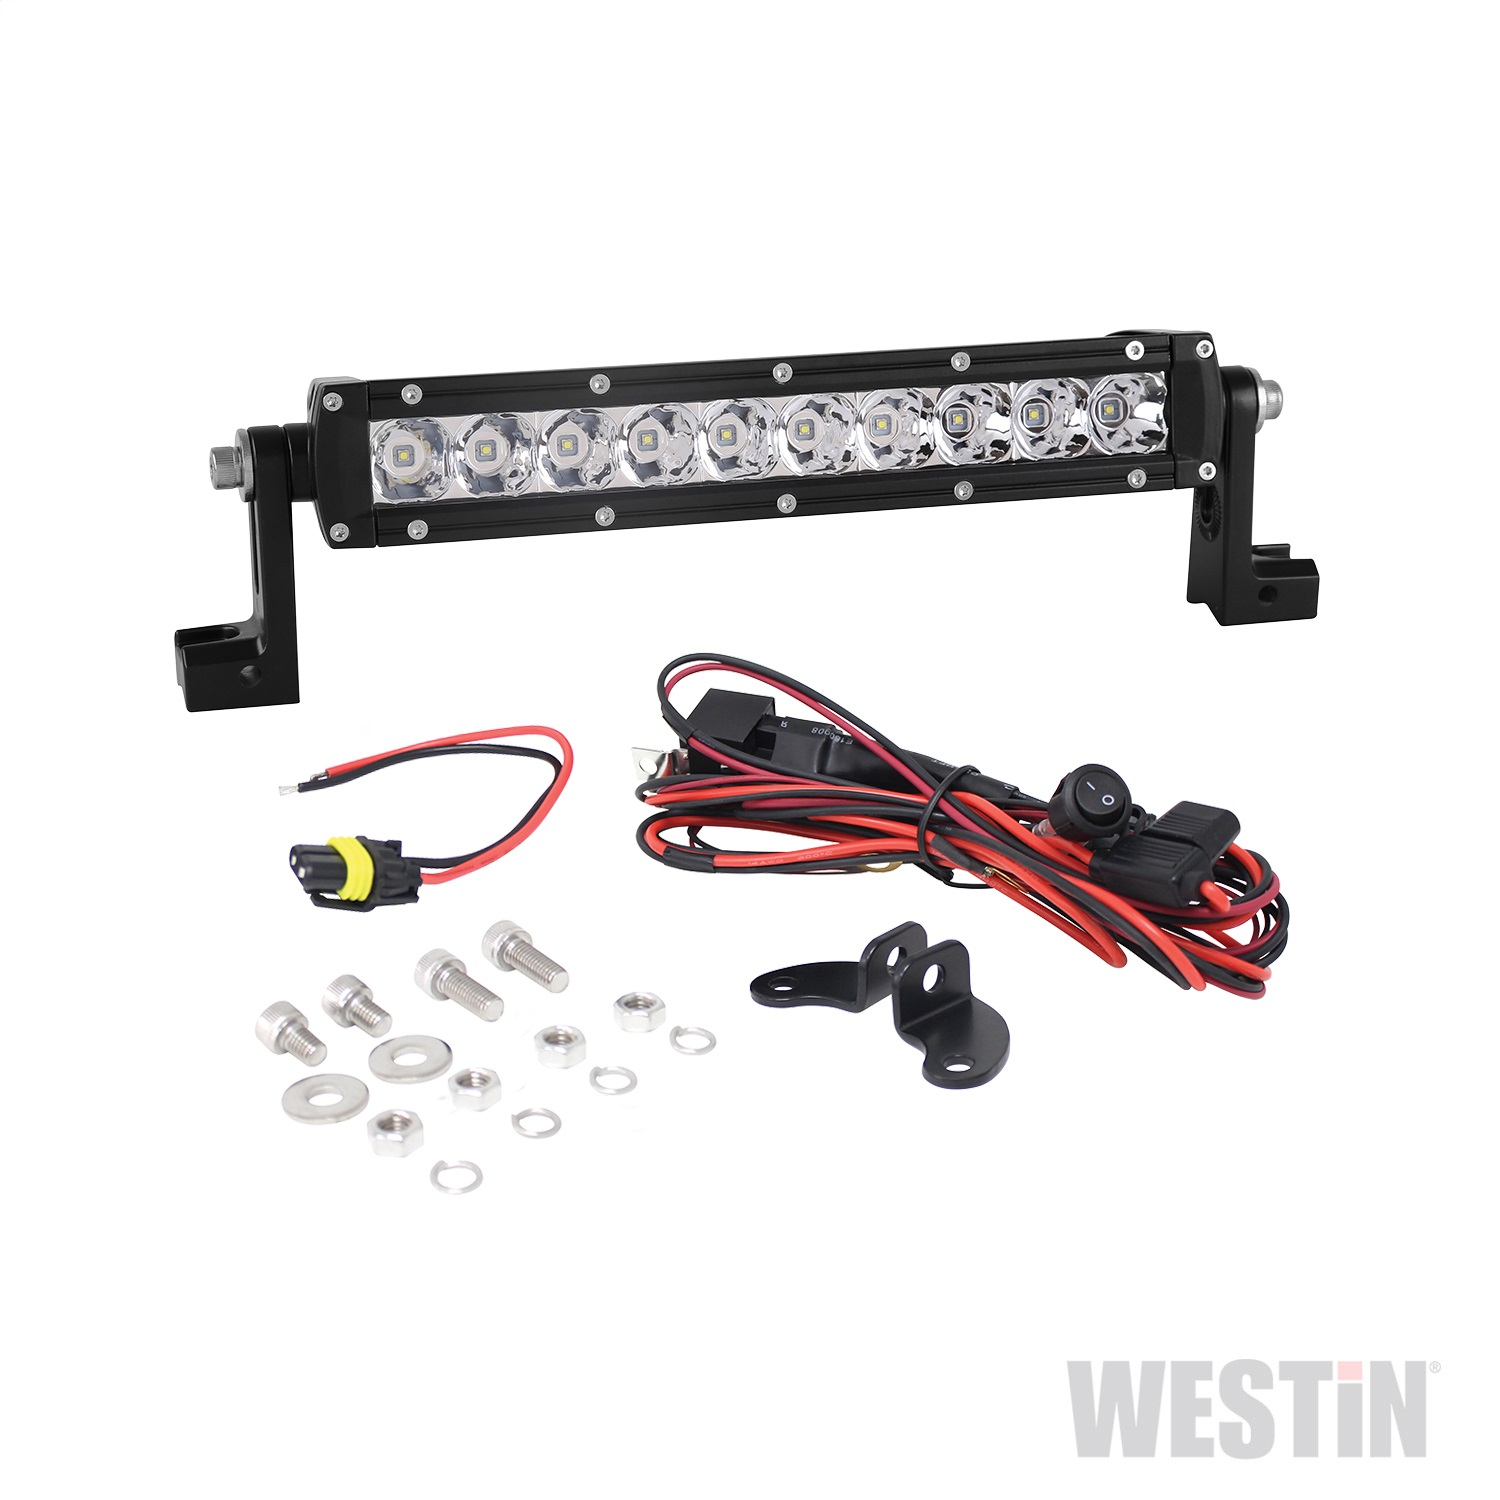 Westin 09-12270-6F Xtreme LED Light Bar